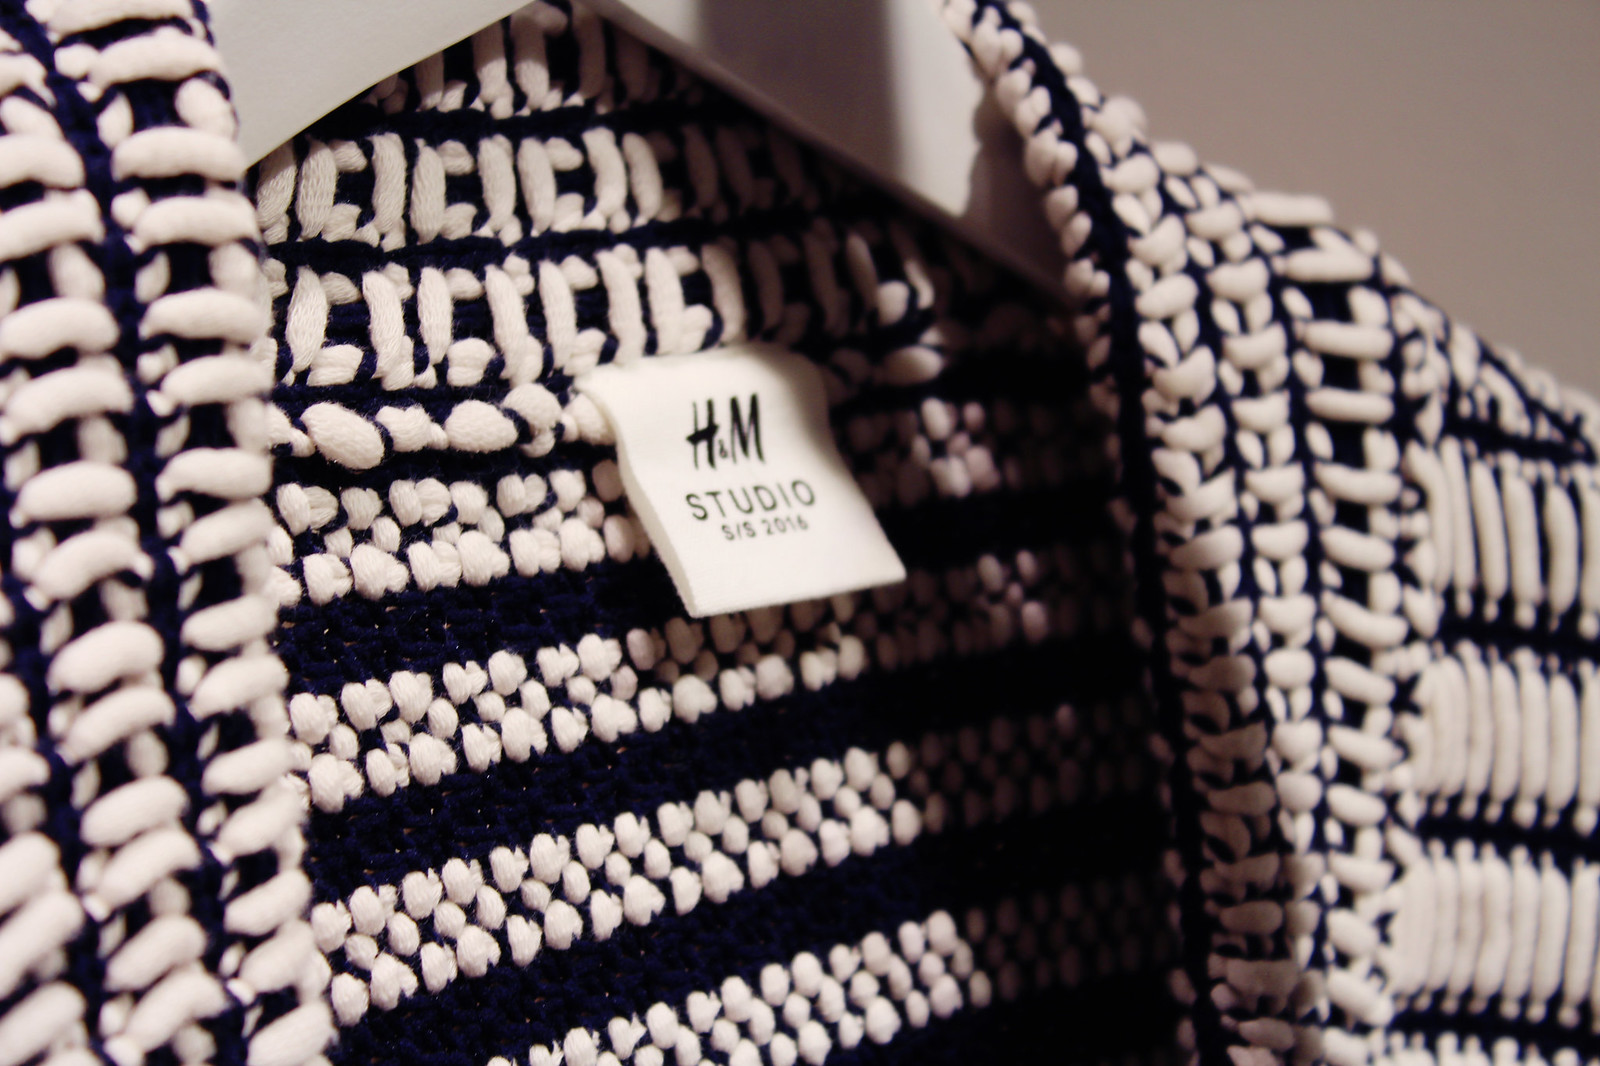 H&M Studio SS 16 collection preview